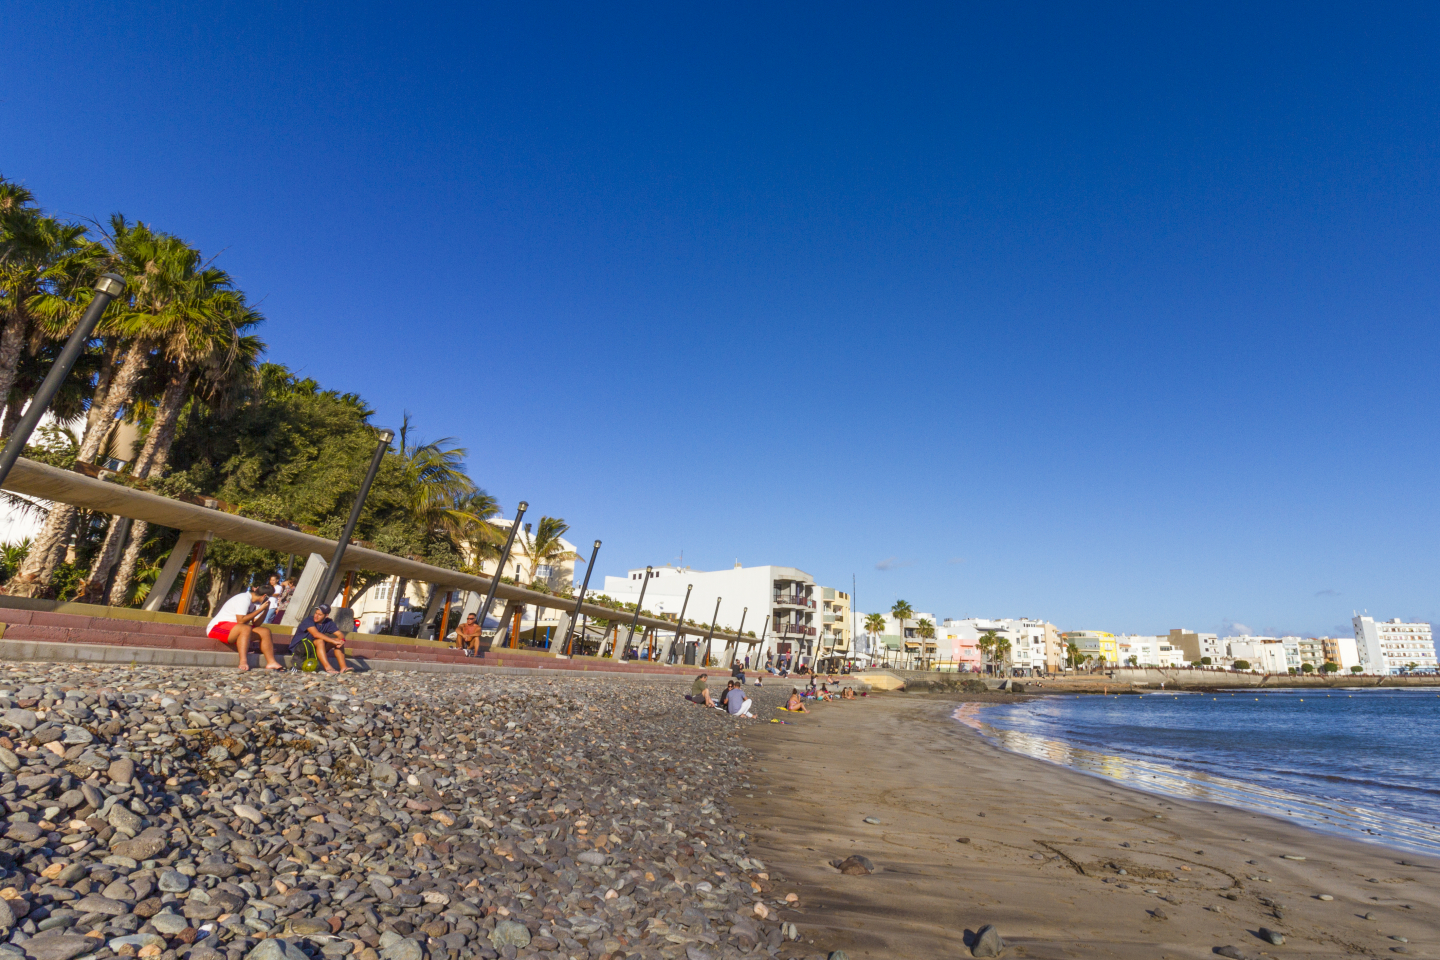 Arinaga beach in Gran Canaria earned a 2018 Blue Flag